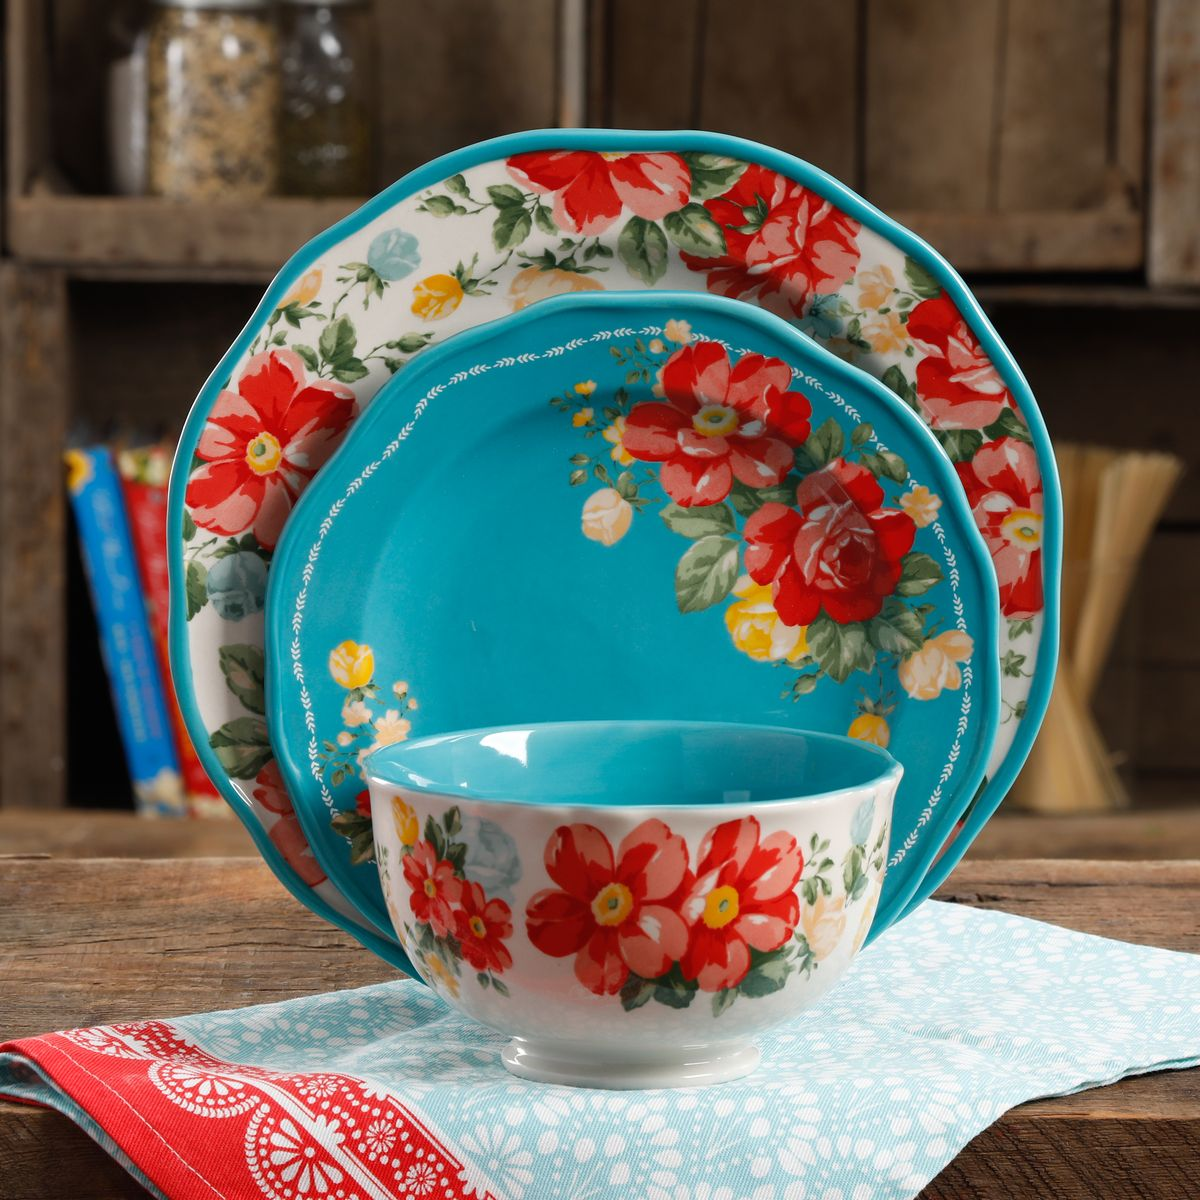 Free 2-day shipping. Buy The Pioneer Woman Vintage Floral 12-Piece Dinnerware Set, Teal at Walmart.com